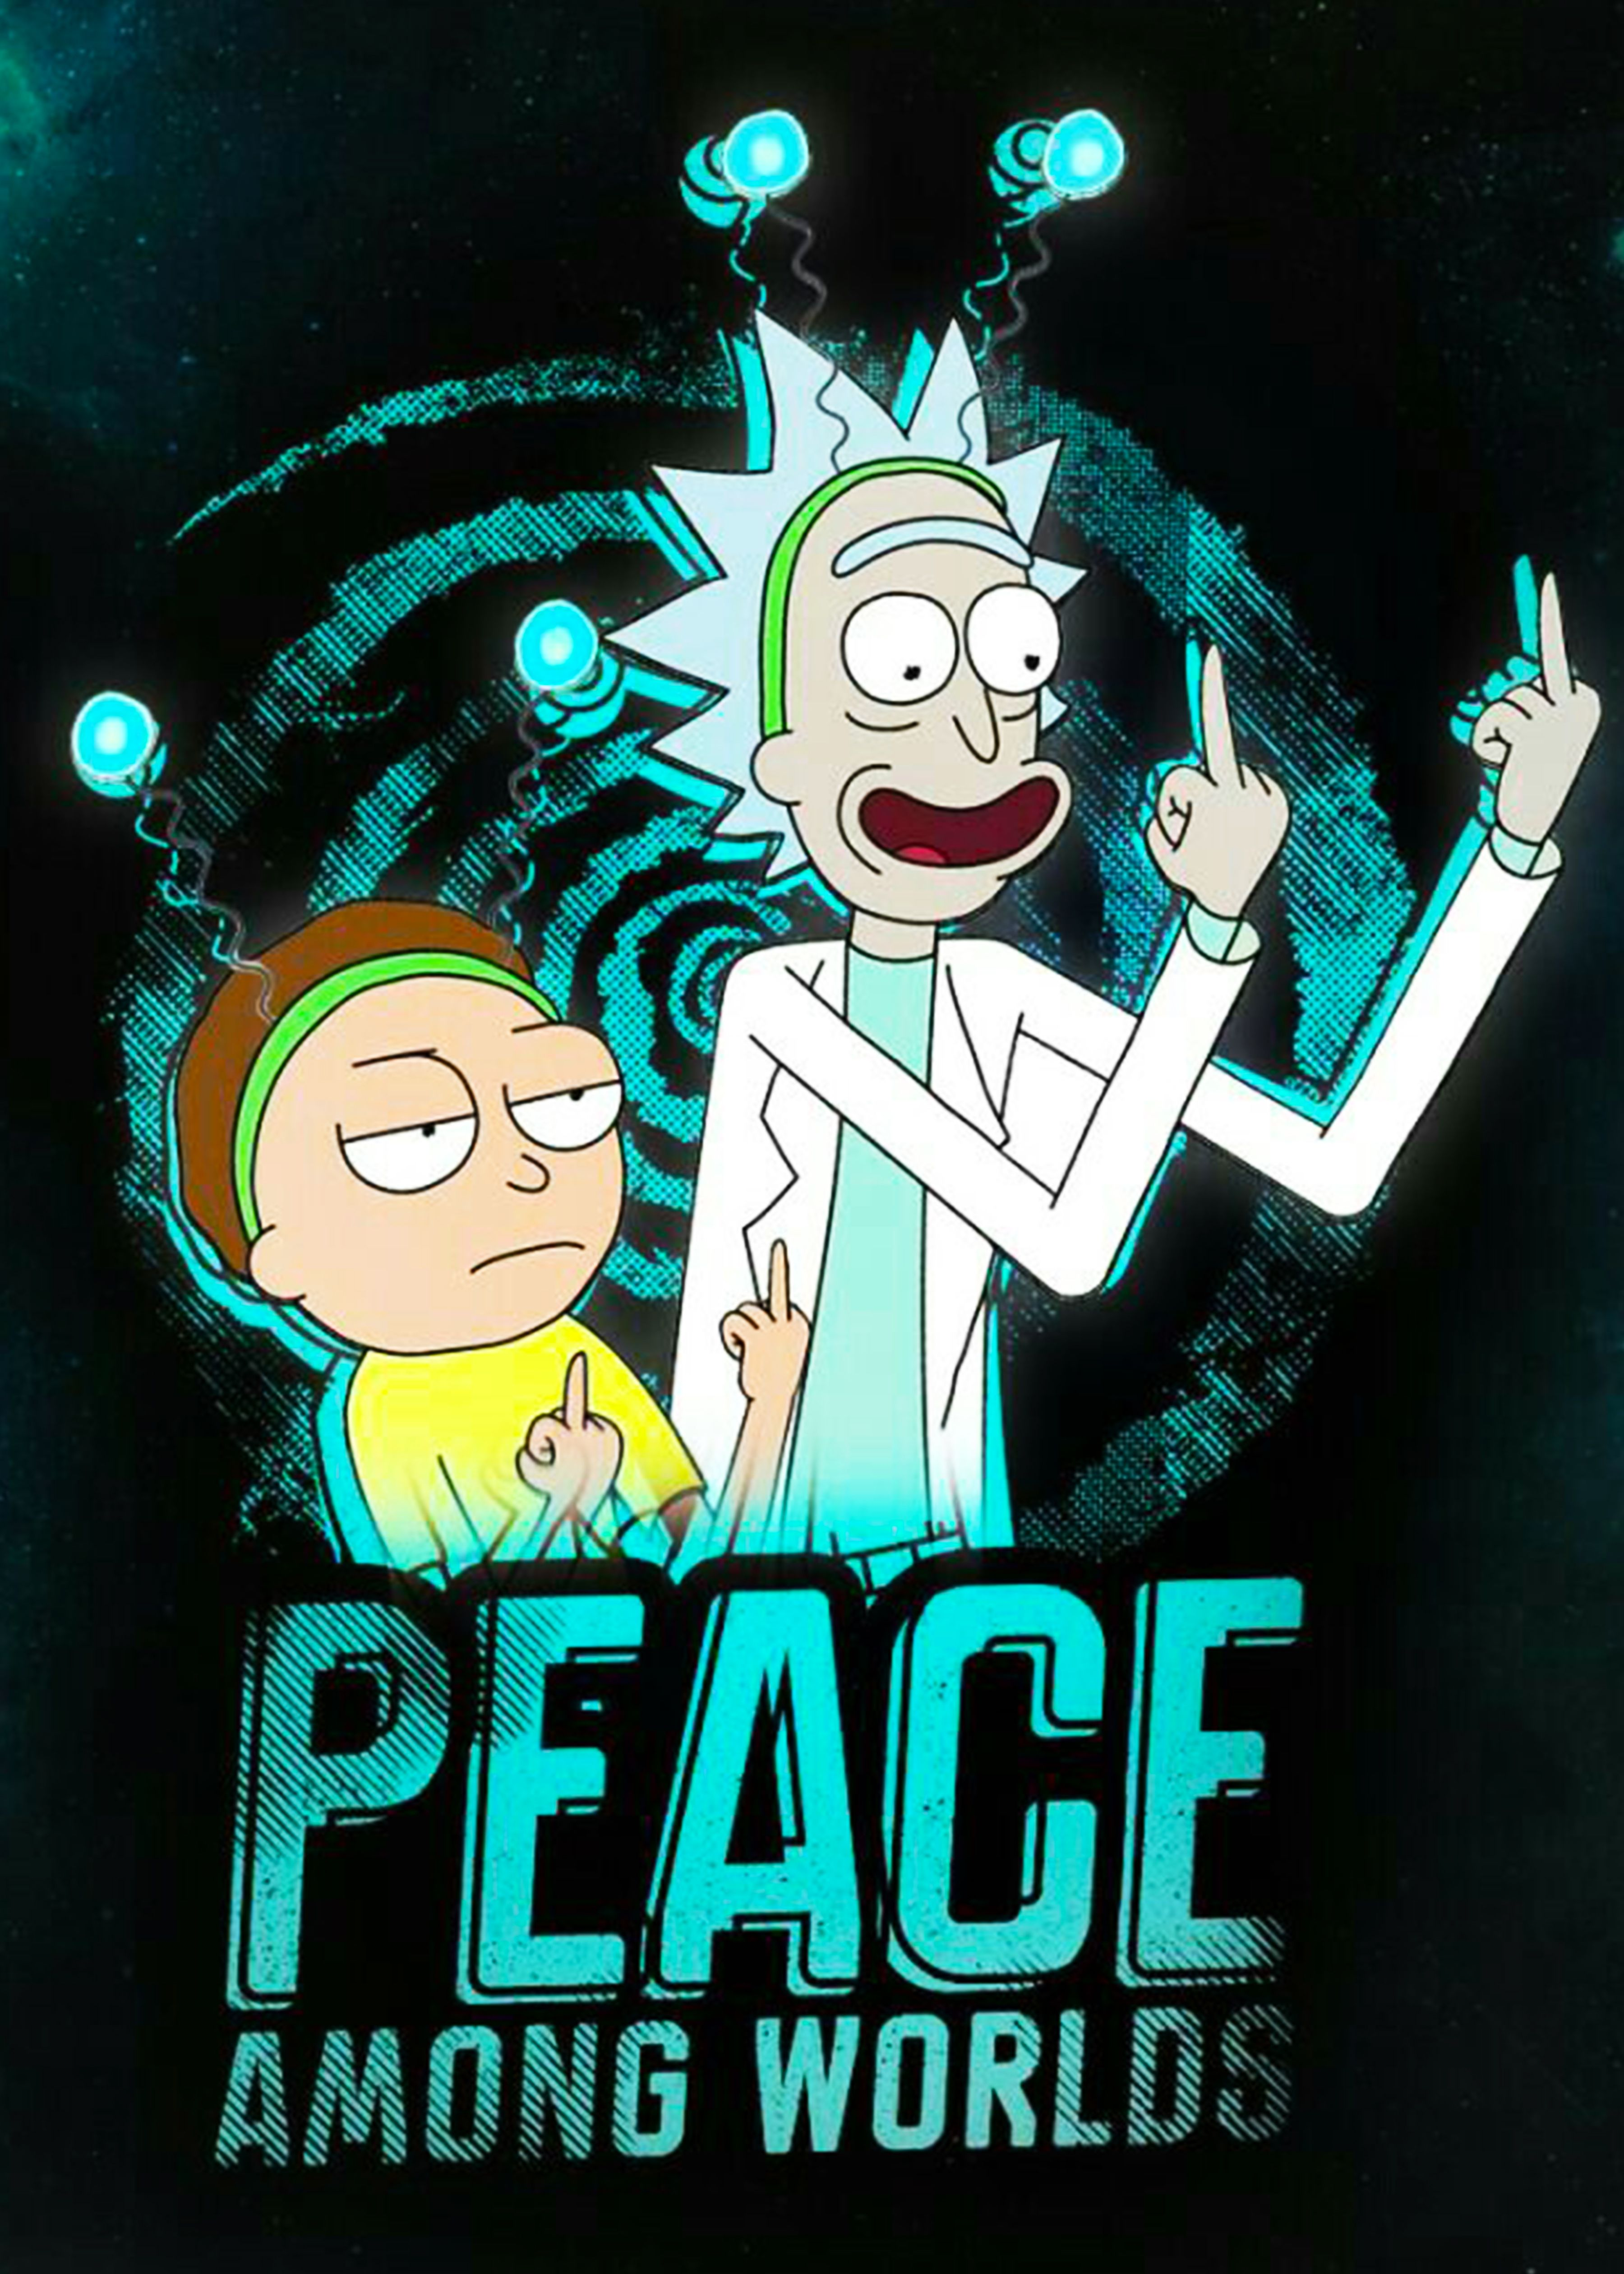 Rick And Morty Peace Iphone Wallpaper Rick And Morty Rick And Morty Poster Rick And Morty Wallpapers